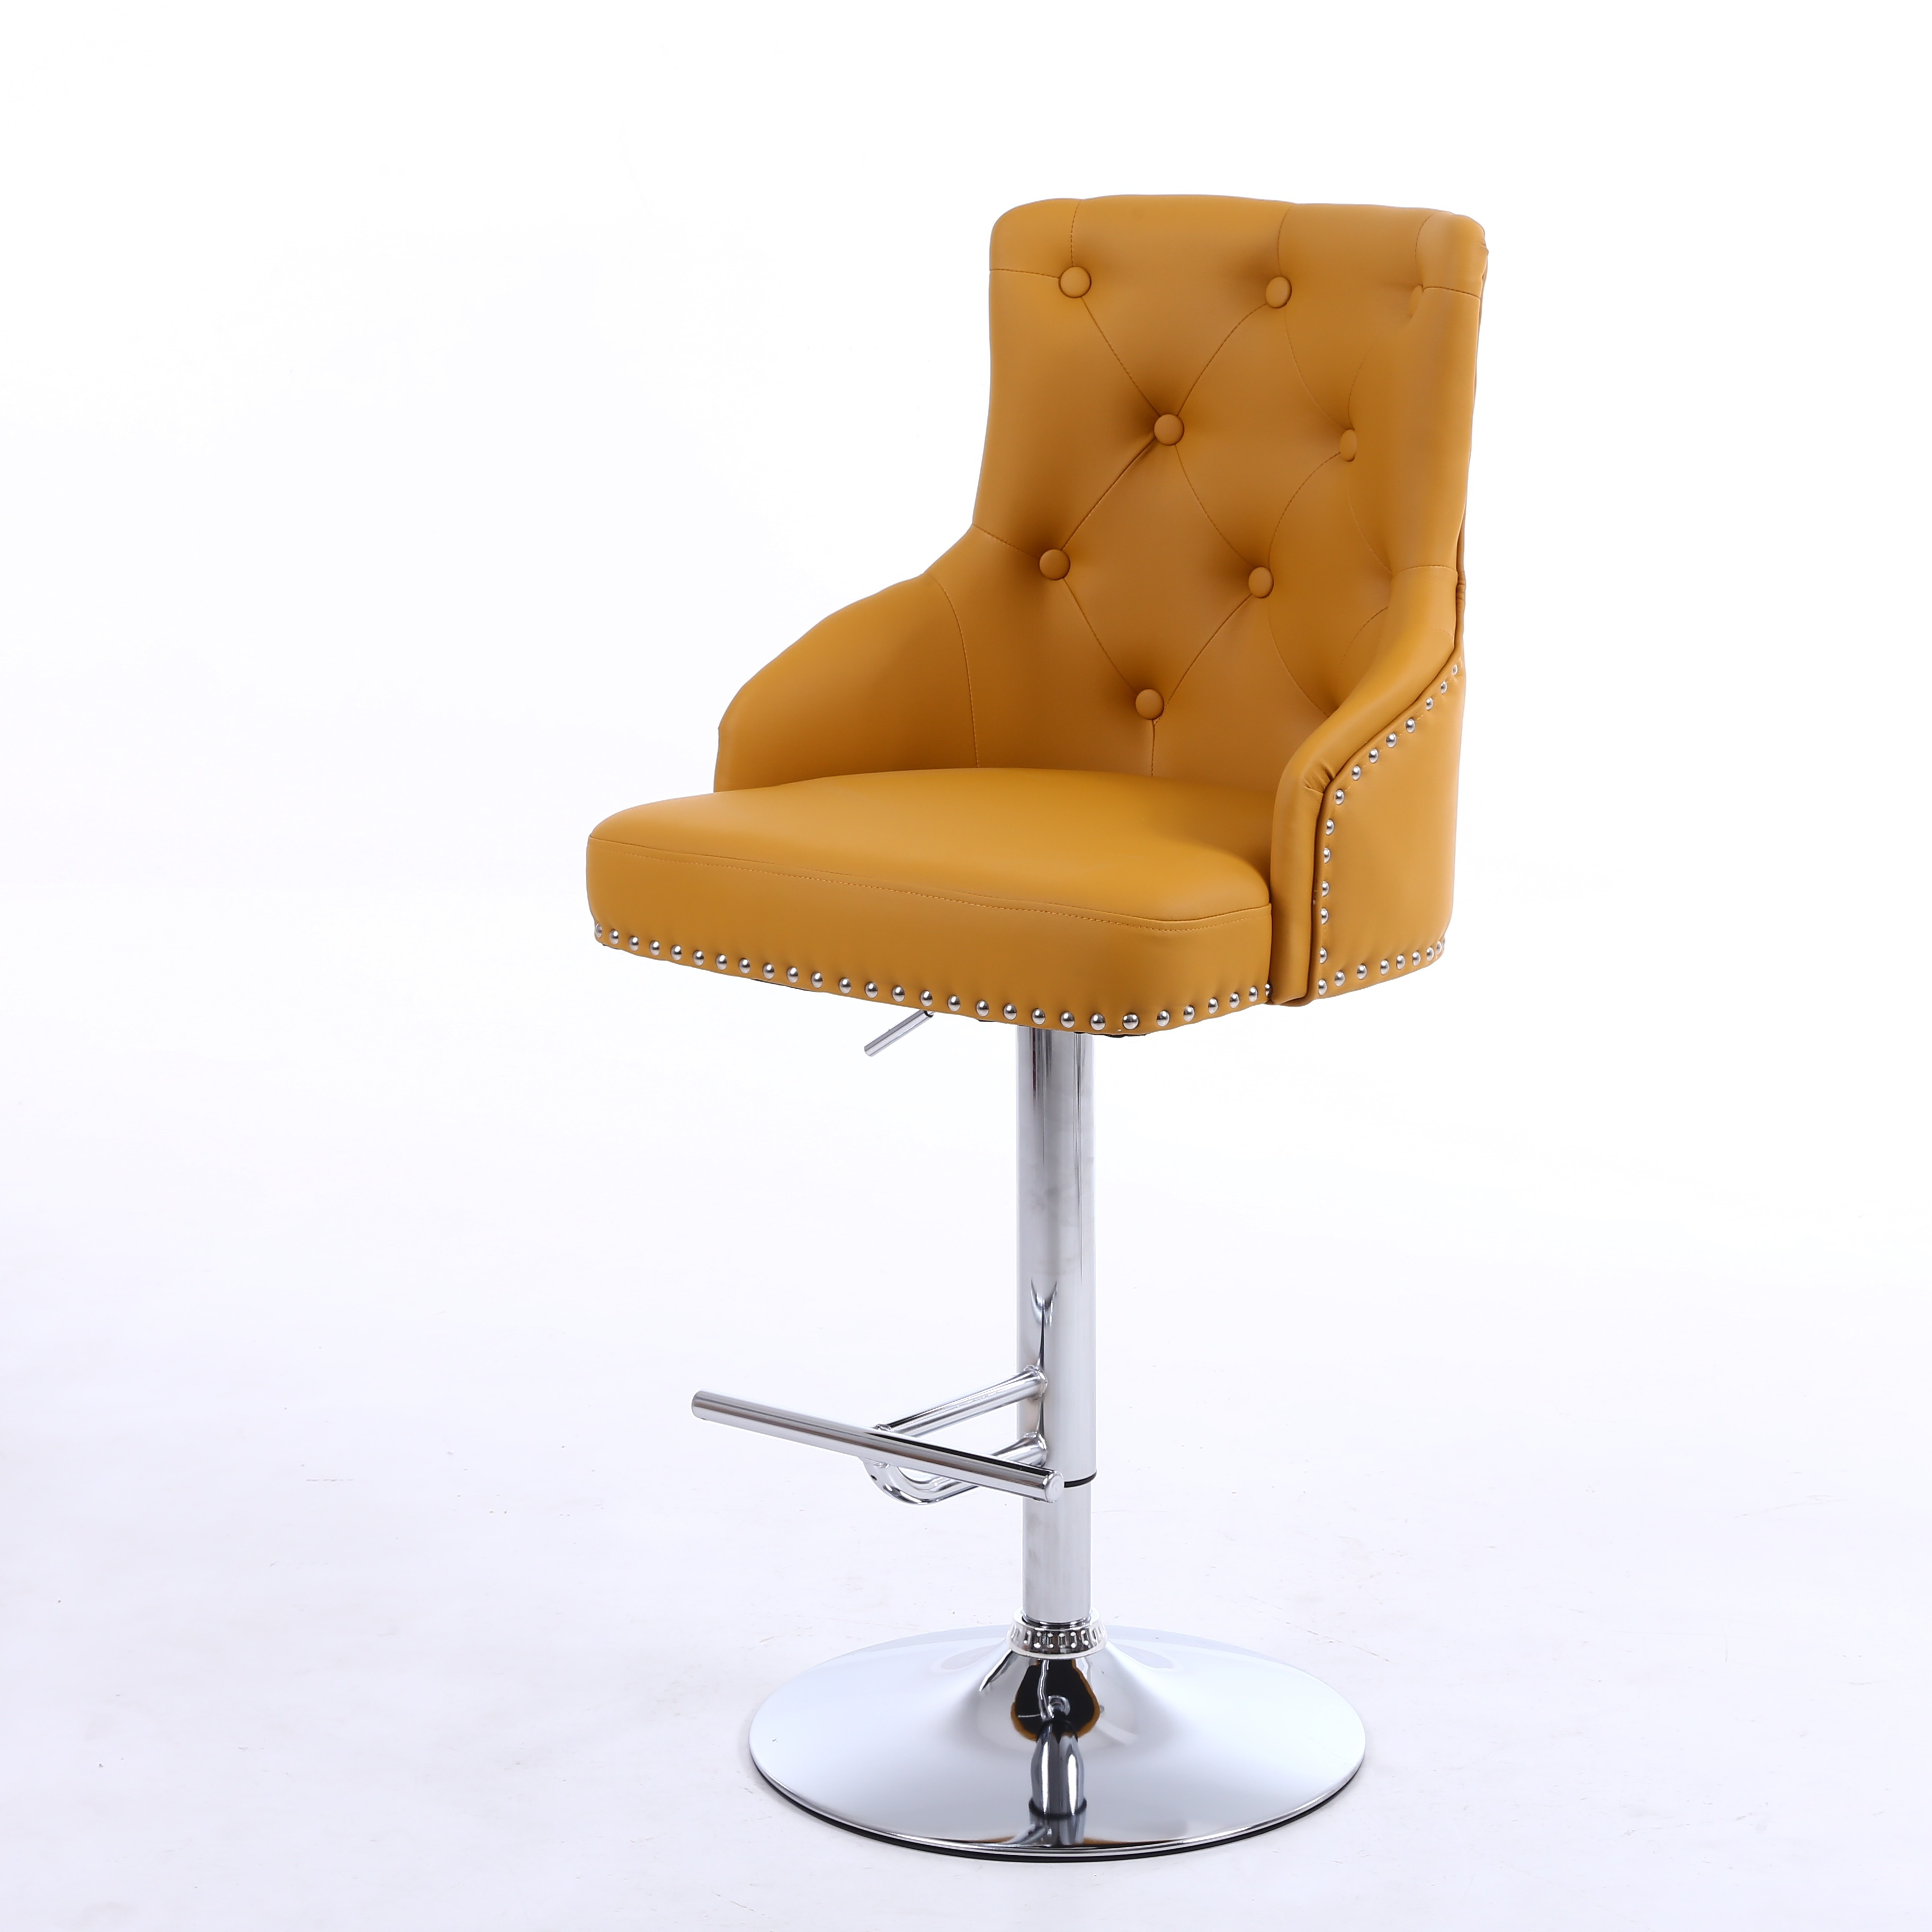 Awe Inspiring Rocco Yellow Leather Buttoned Back Bar Stool Gmtry Best Dining Table And Chair Ideas Images Gmtryco